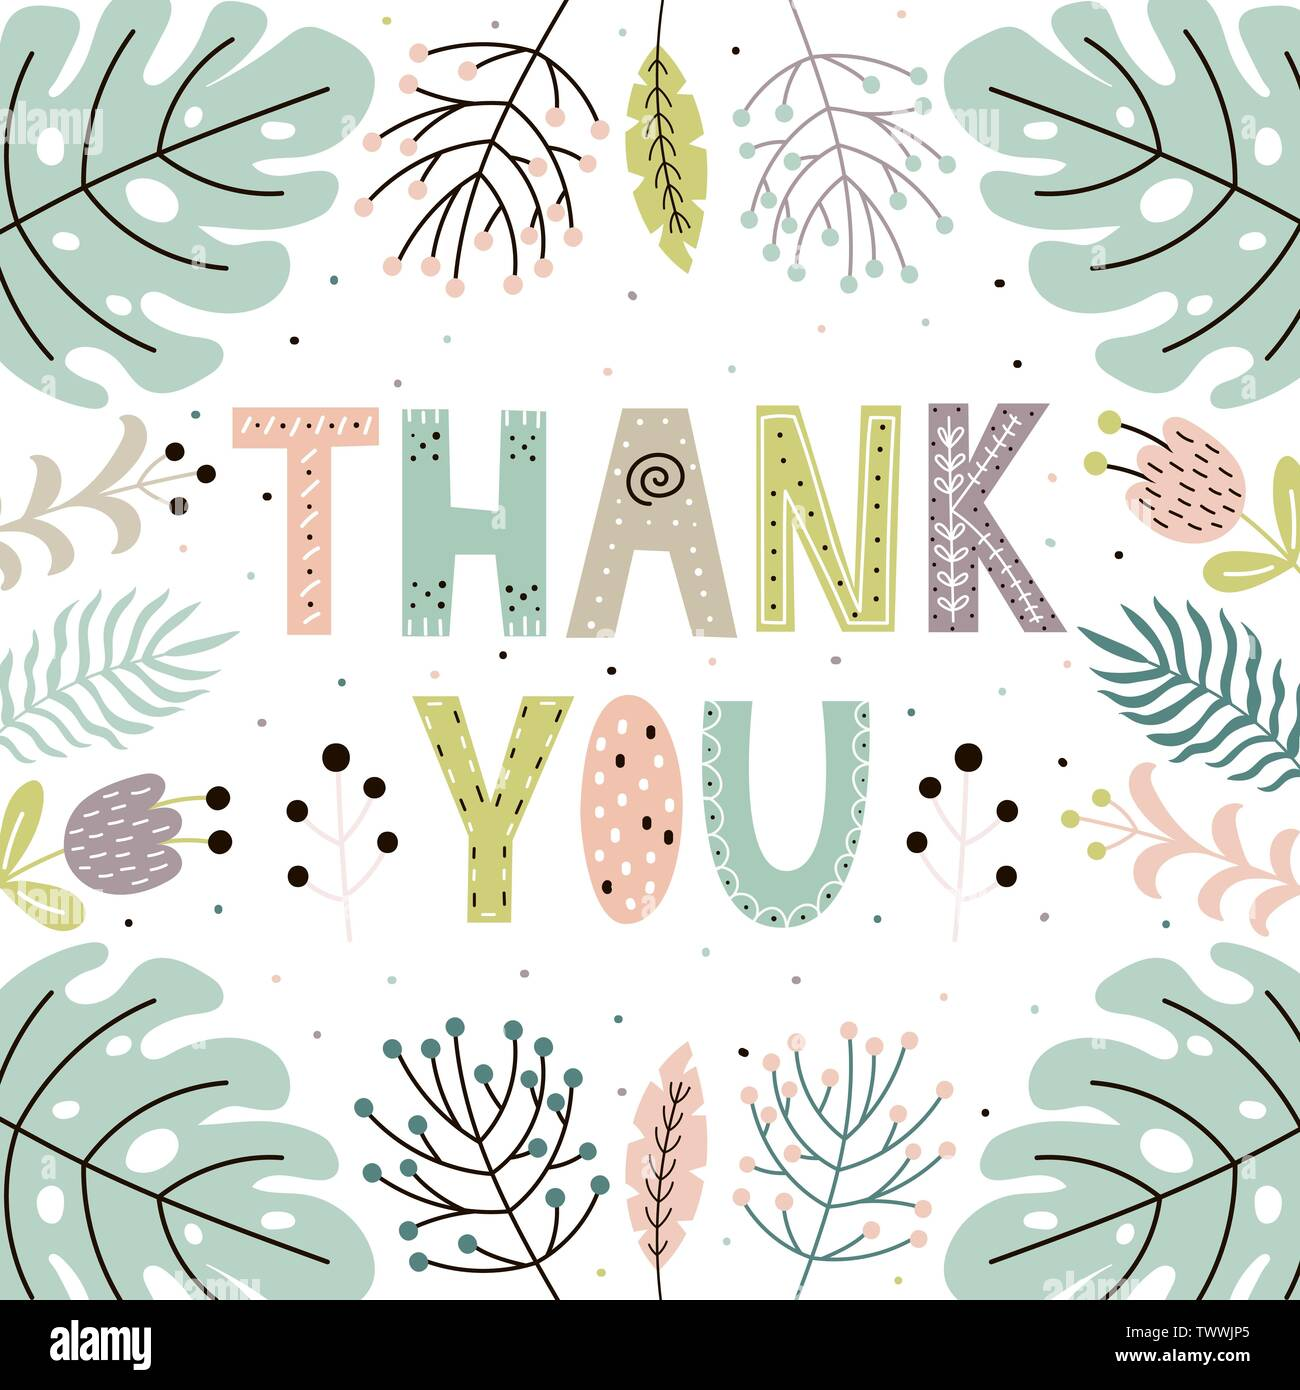 Thank you cute card with hand drawn leaves and plants. Floral background with hand lettering. Vector illustration - Stock Vector